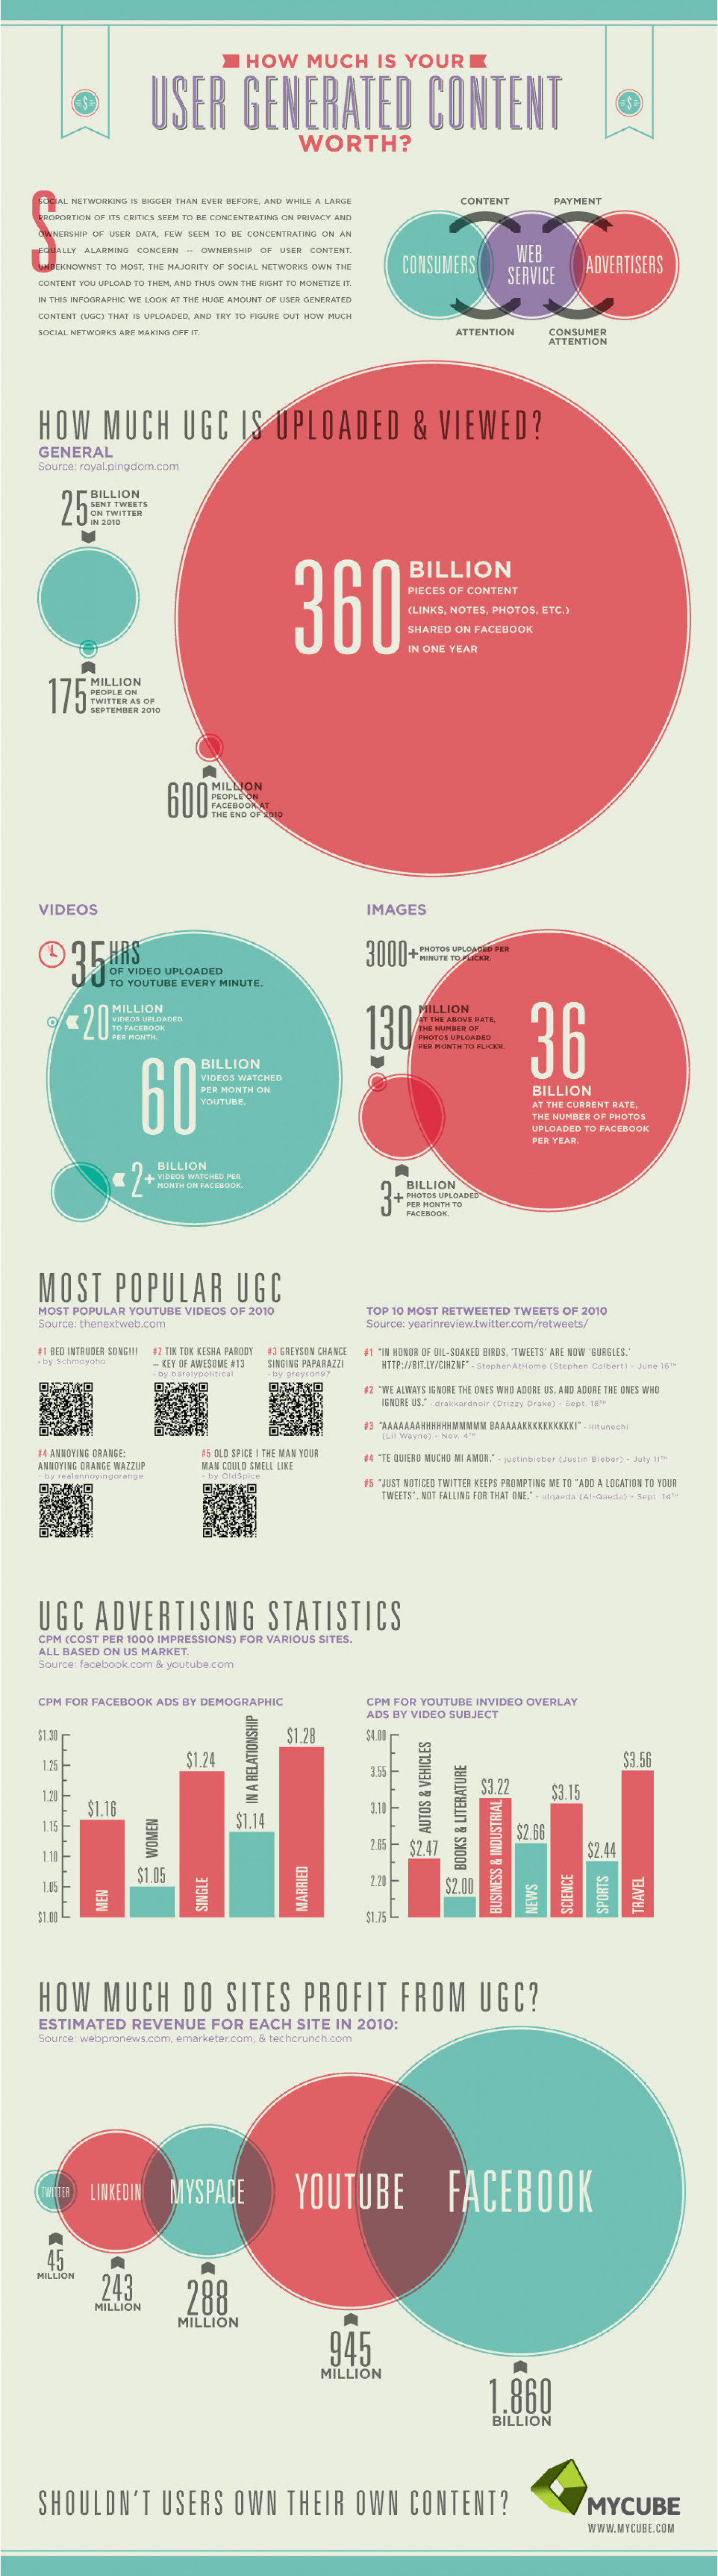 How much is your UGC worth? Infographic